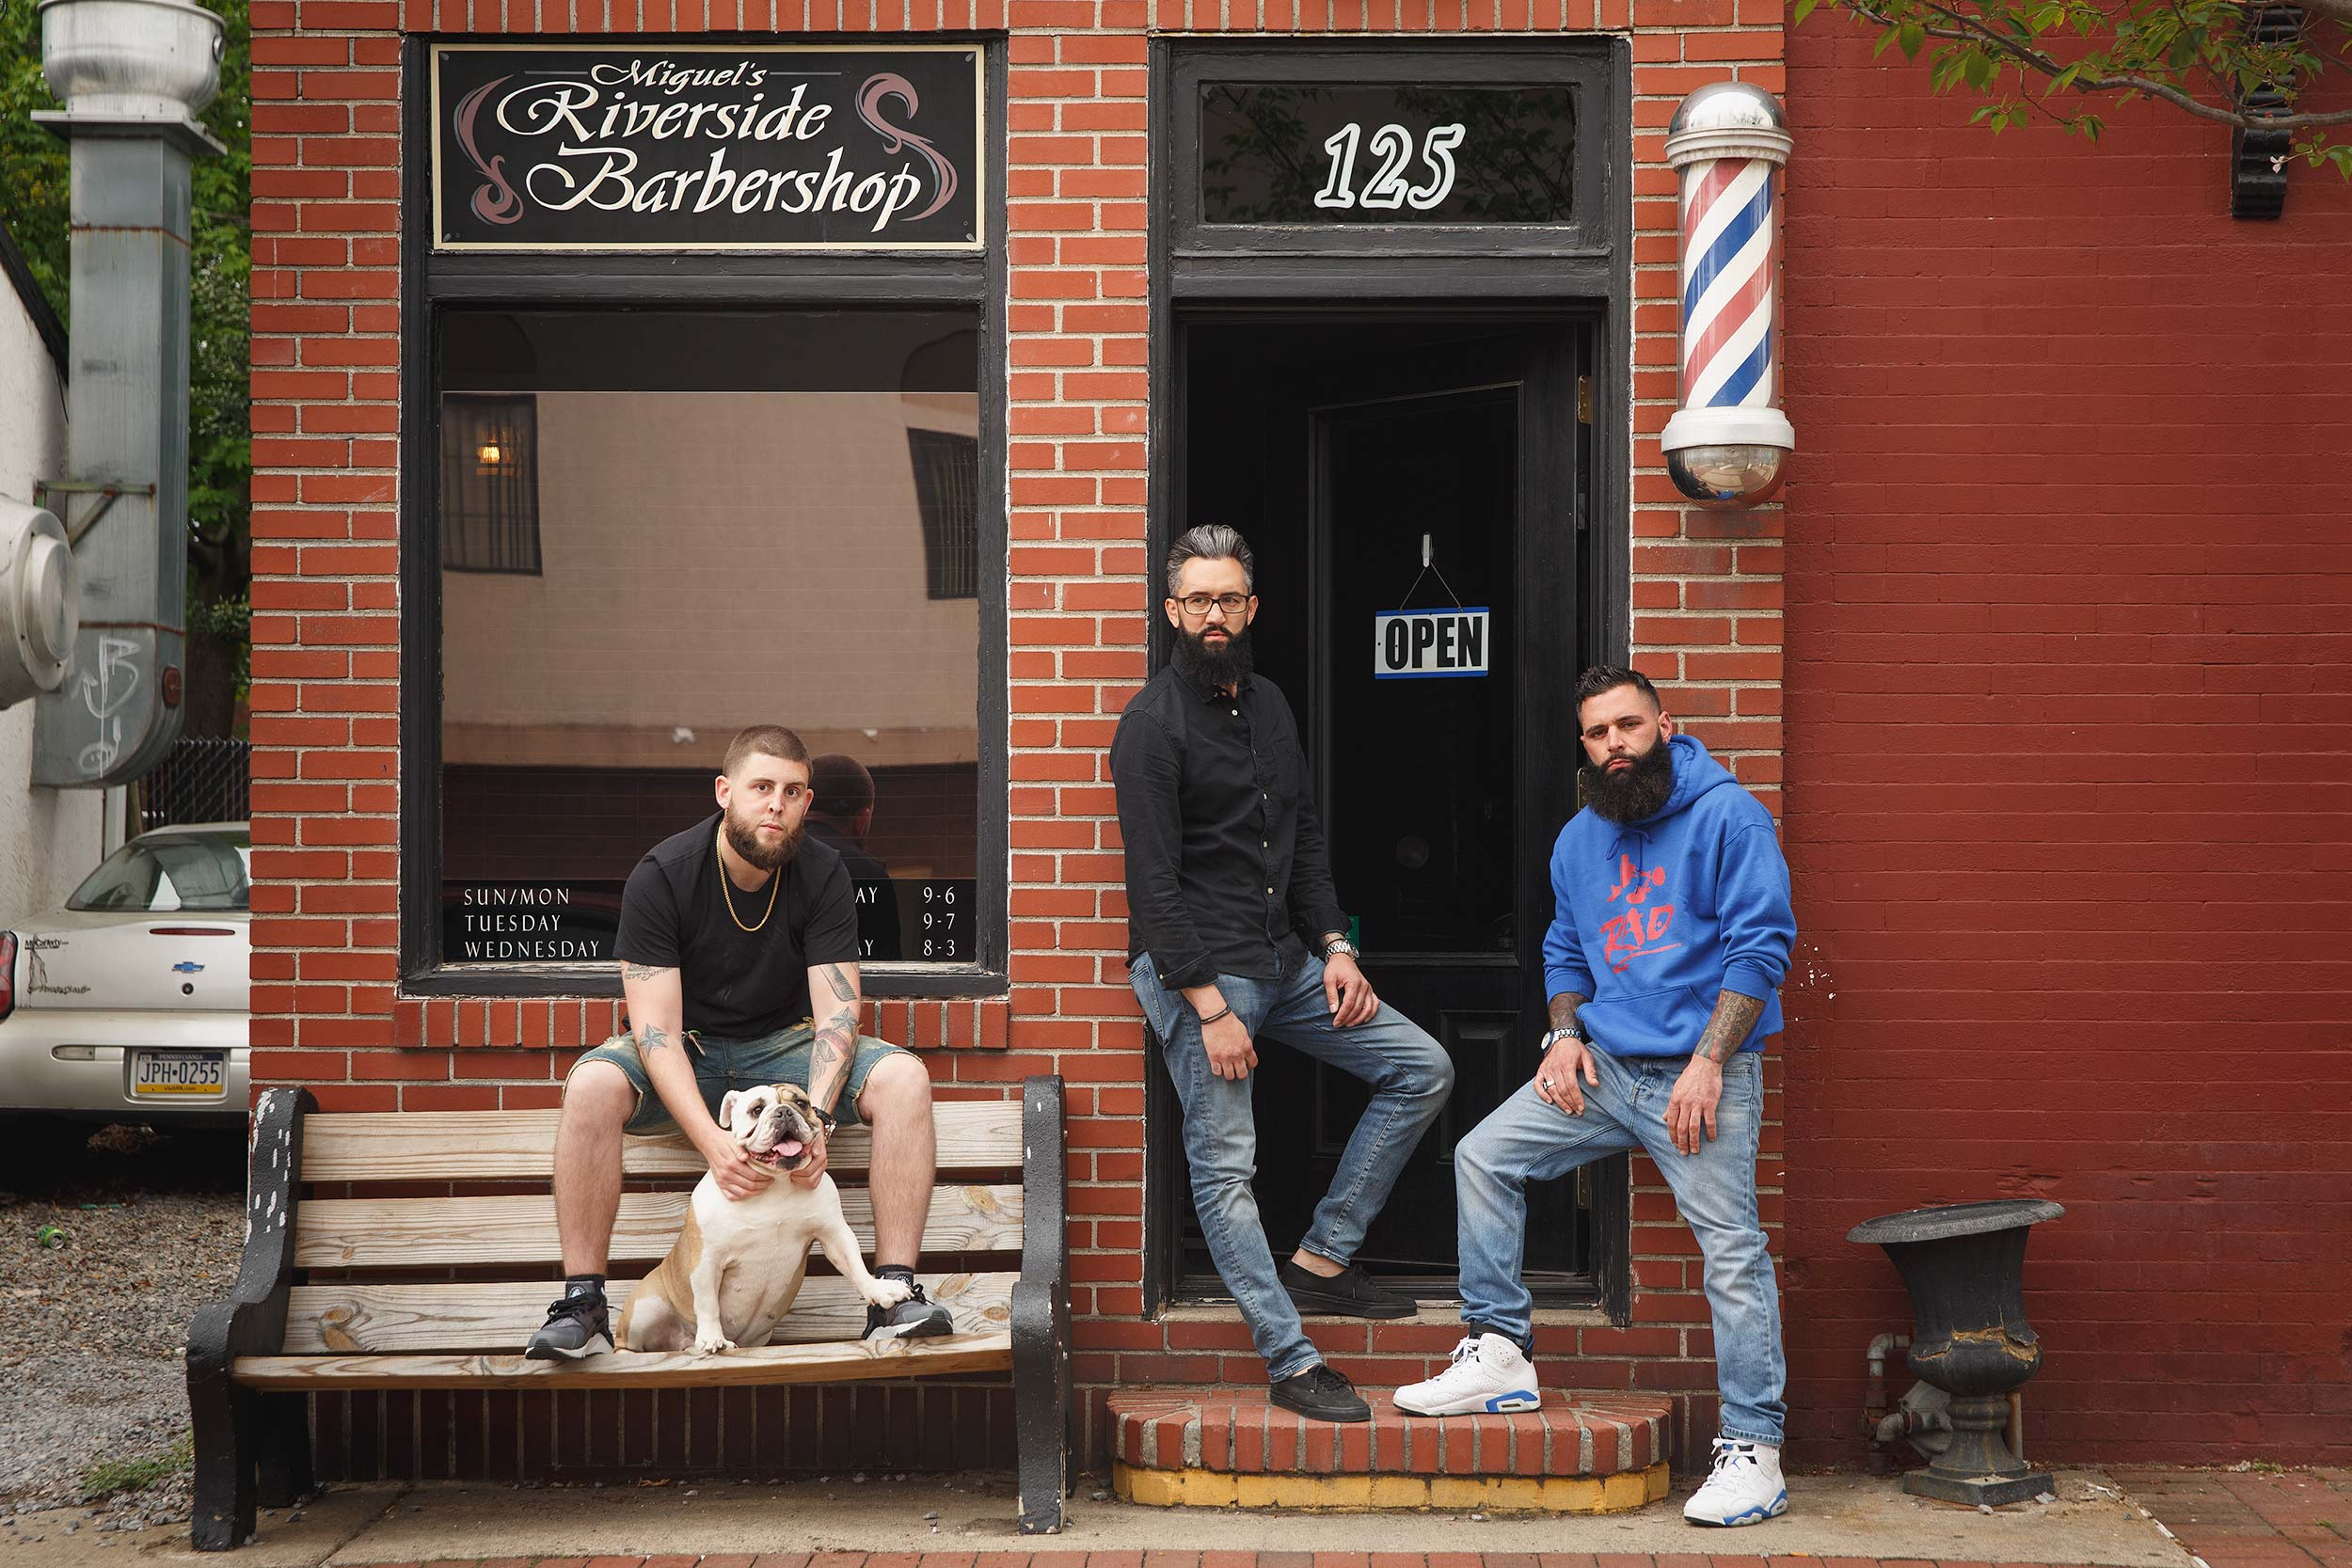 business_portrait_barbershop_bristol-4814